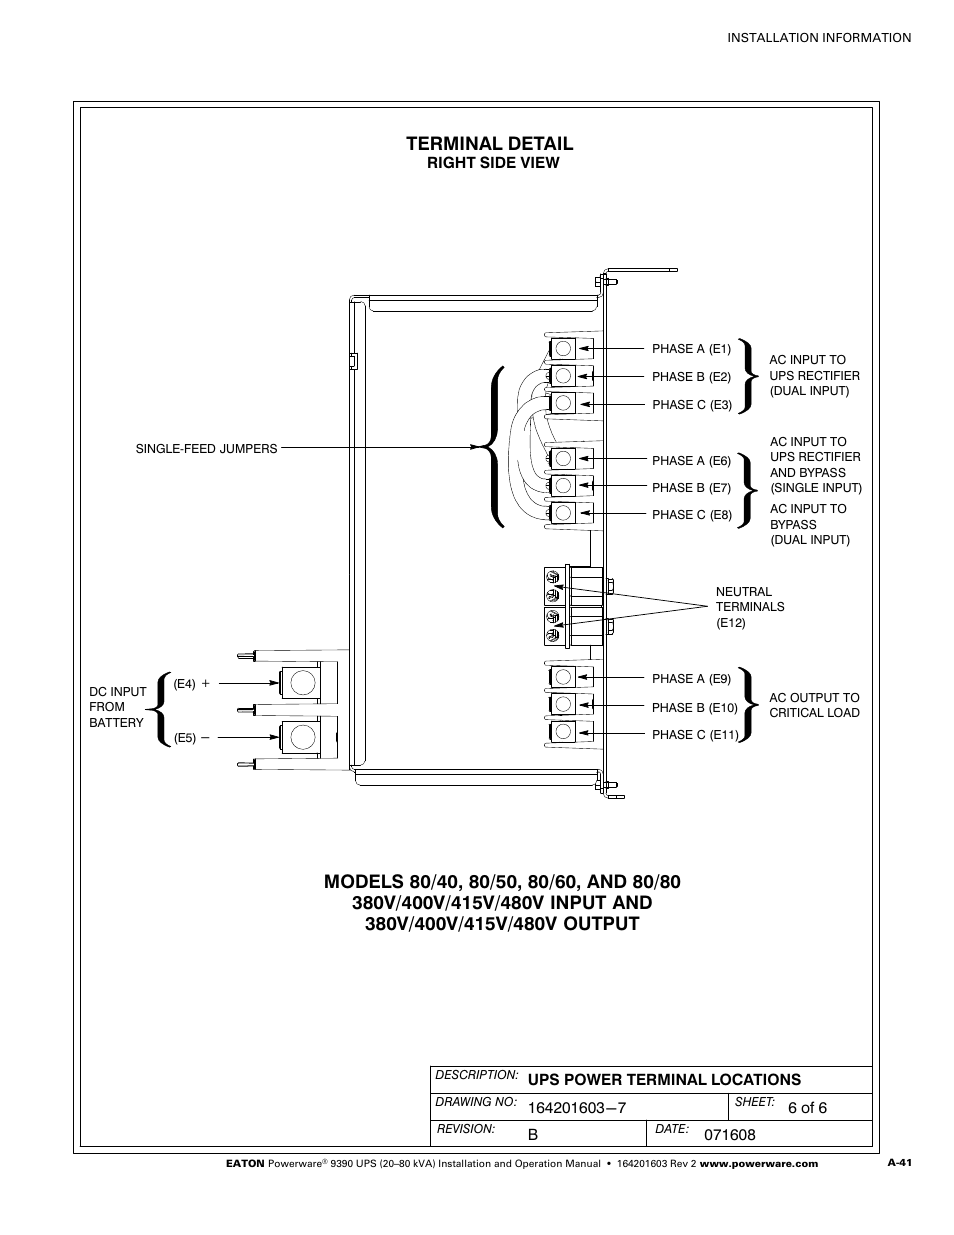 A 42 For Powerware Hot Sync Terminal Detail 9390 Ups 380v Single Line Wiring Diagram 100160 Kva User Manual Page 189 216